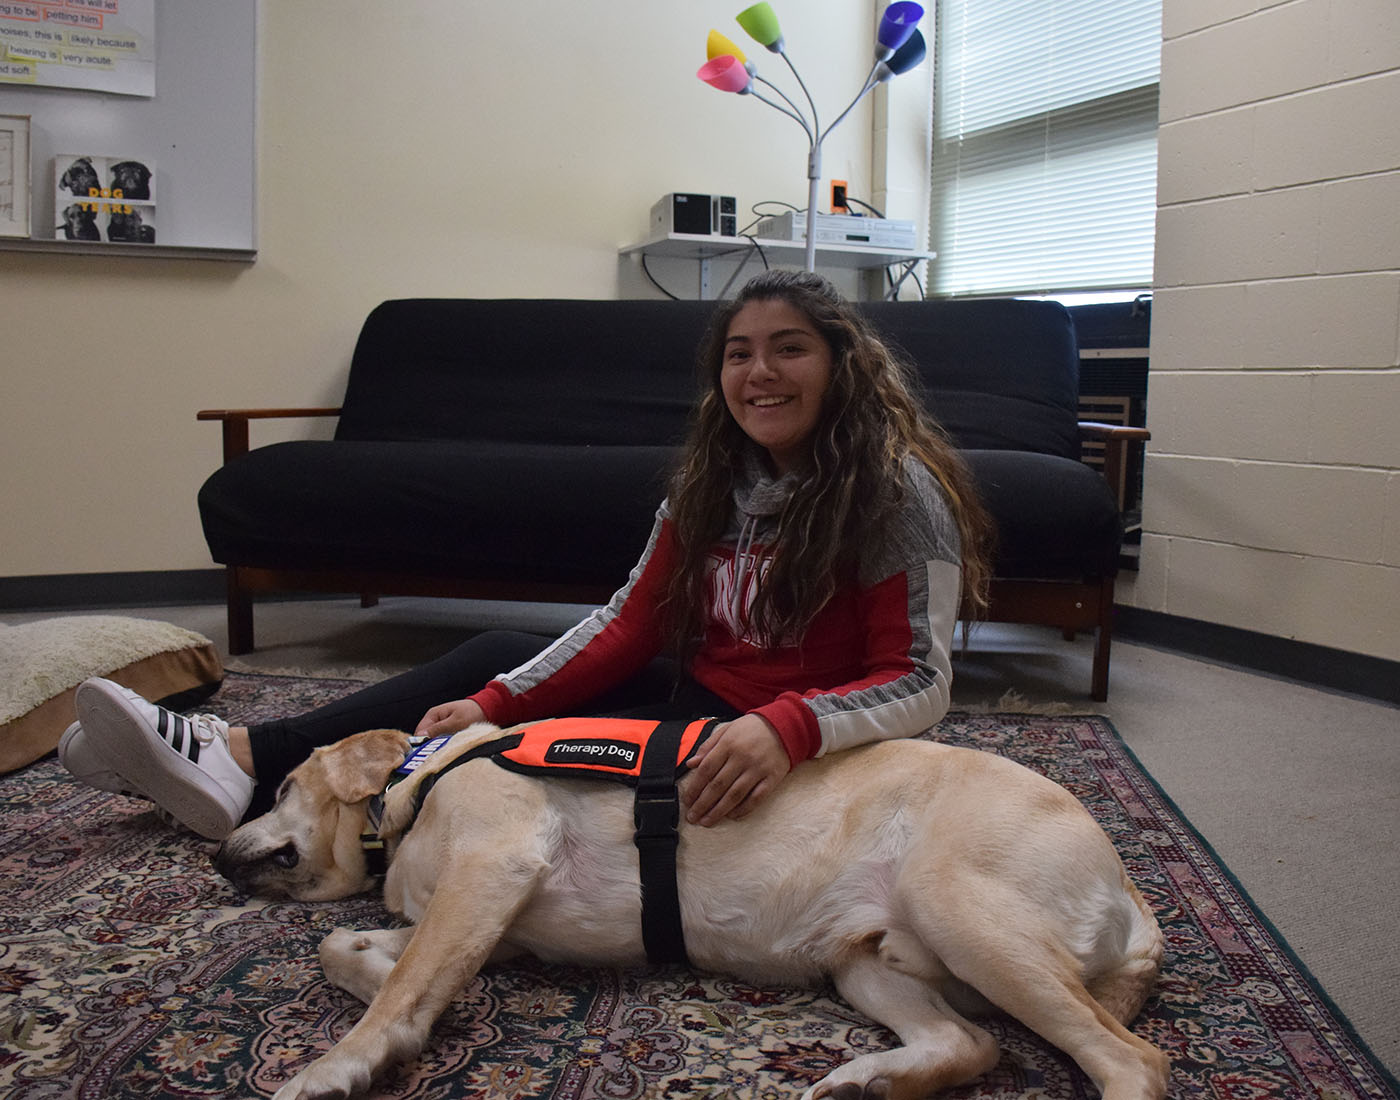 """Freshman Nena Zamarron said, """"It helps me relieve and calm down if I am having a bad day. Petting and looking at the dog helps me relax."""""""